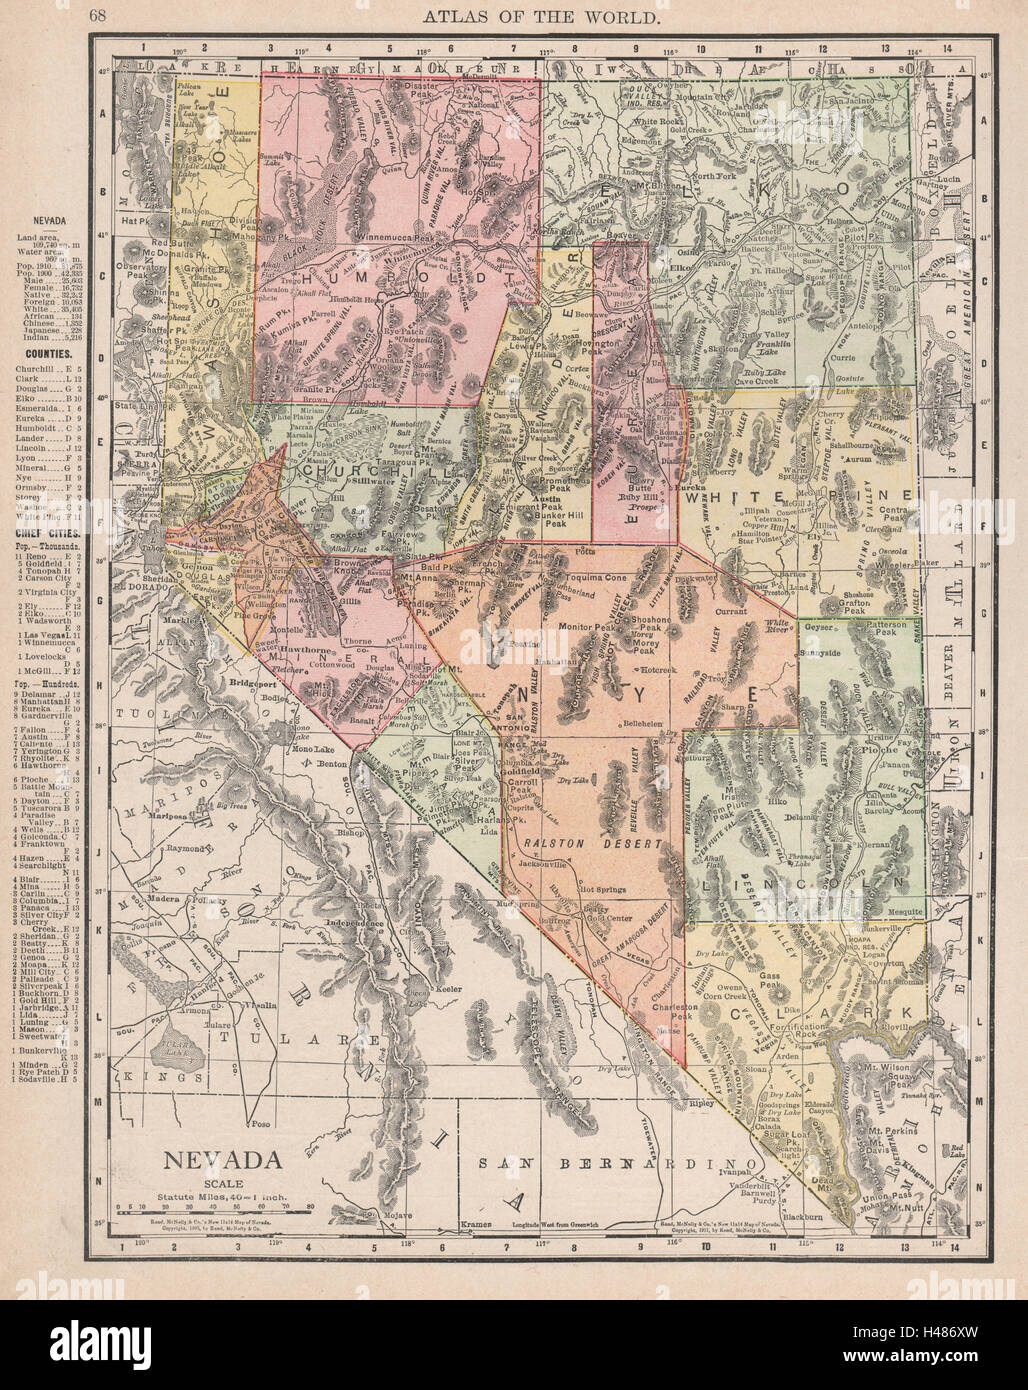 Nevada State Map Shows Las Vegas Incorporated 1911 Rand Mcnally